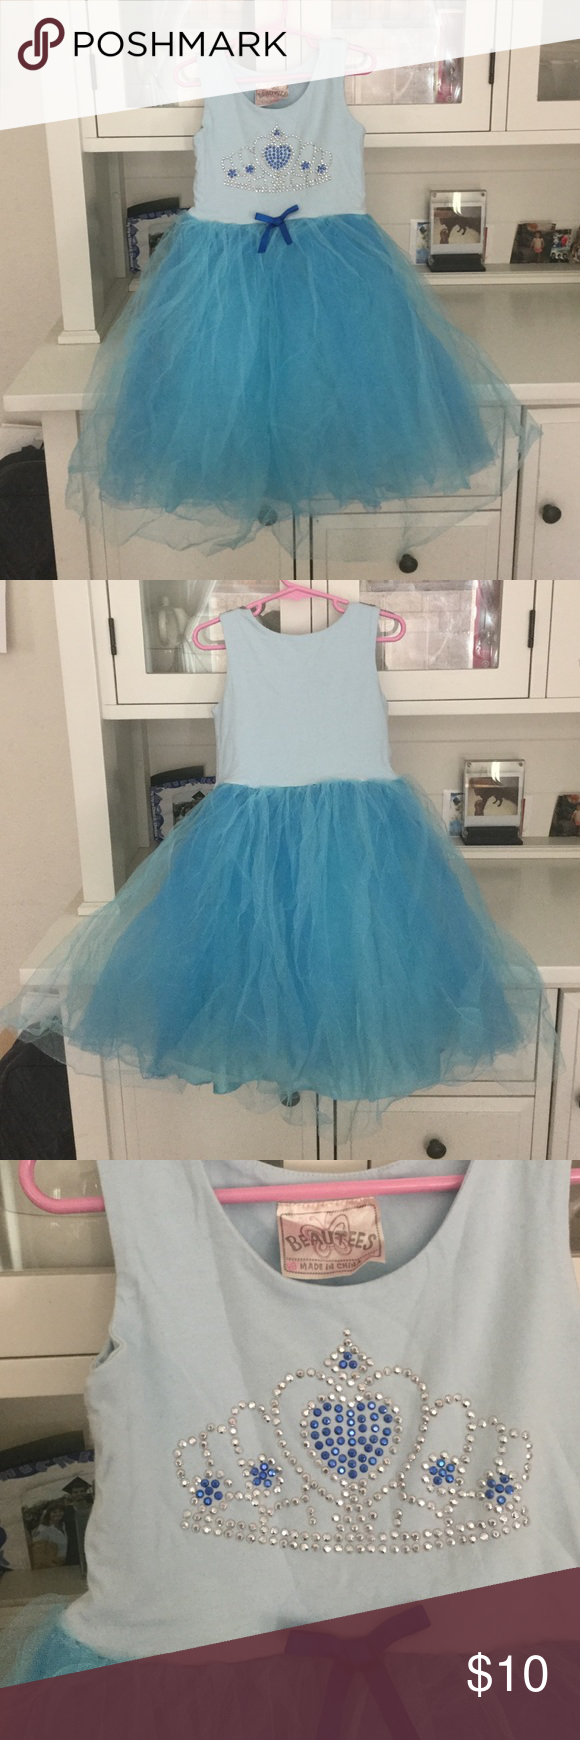 Princess blue dress with tulle skirt Super cute dress! Top is comfortable tee shirt material.. bottoms is PUFFY tulle.. her highness awaits... small hole on tulle around waist.. see pic.. price adjusted Beautees Dresses